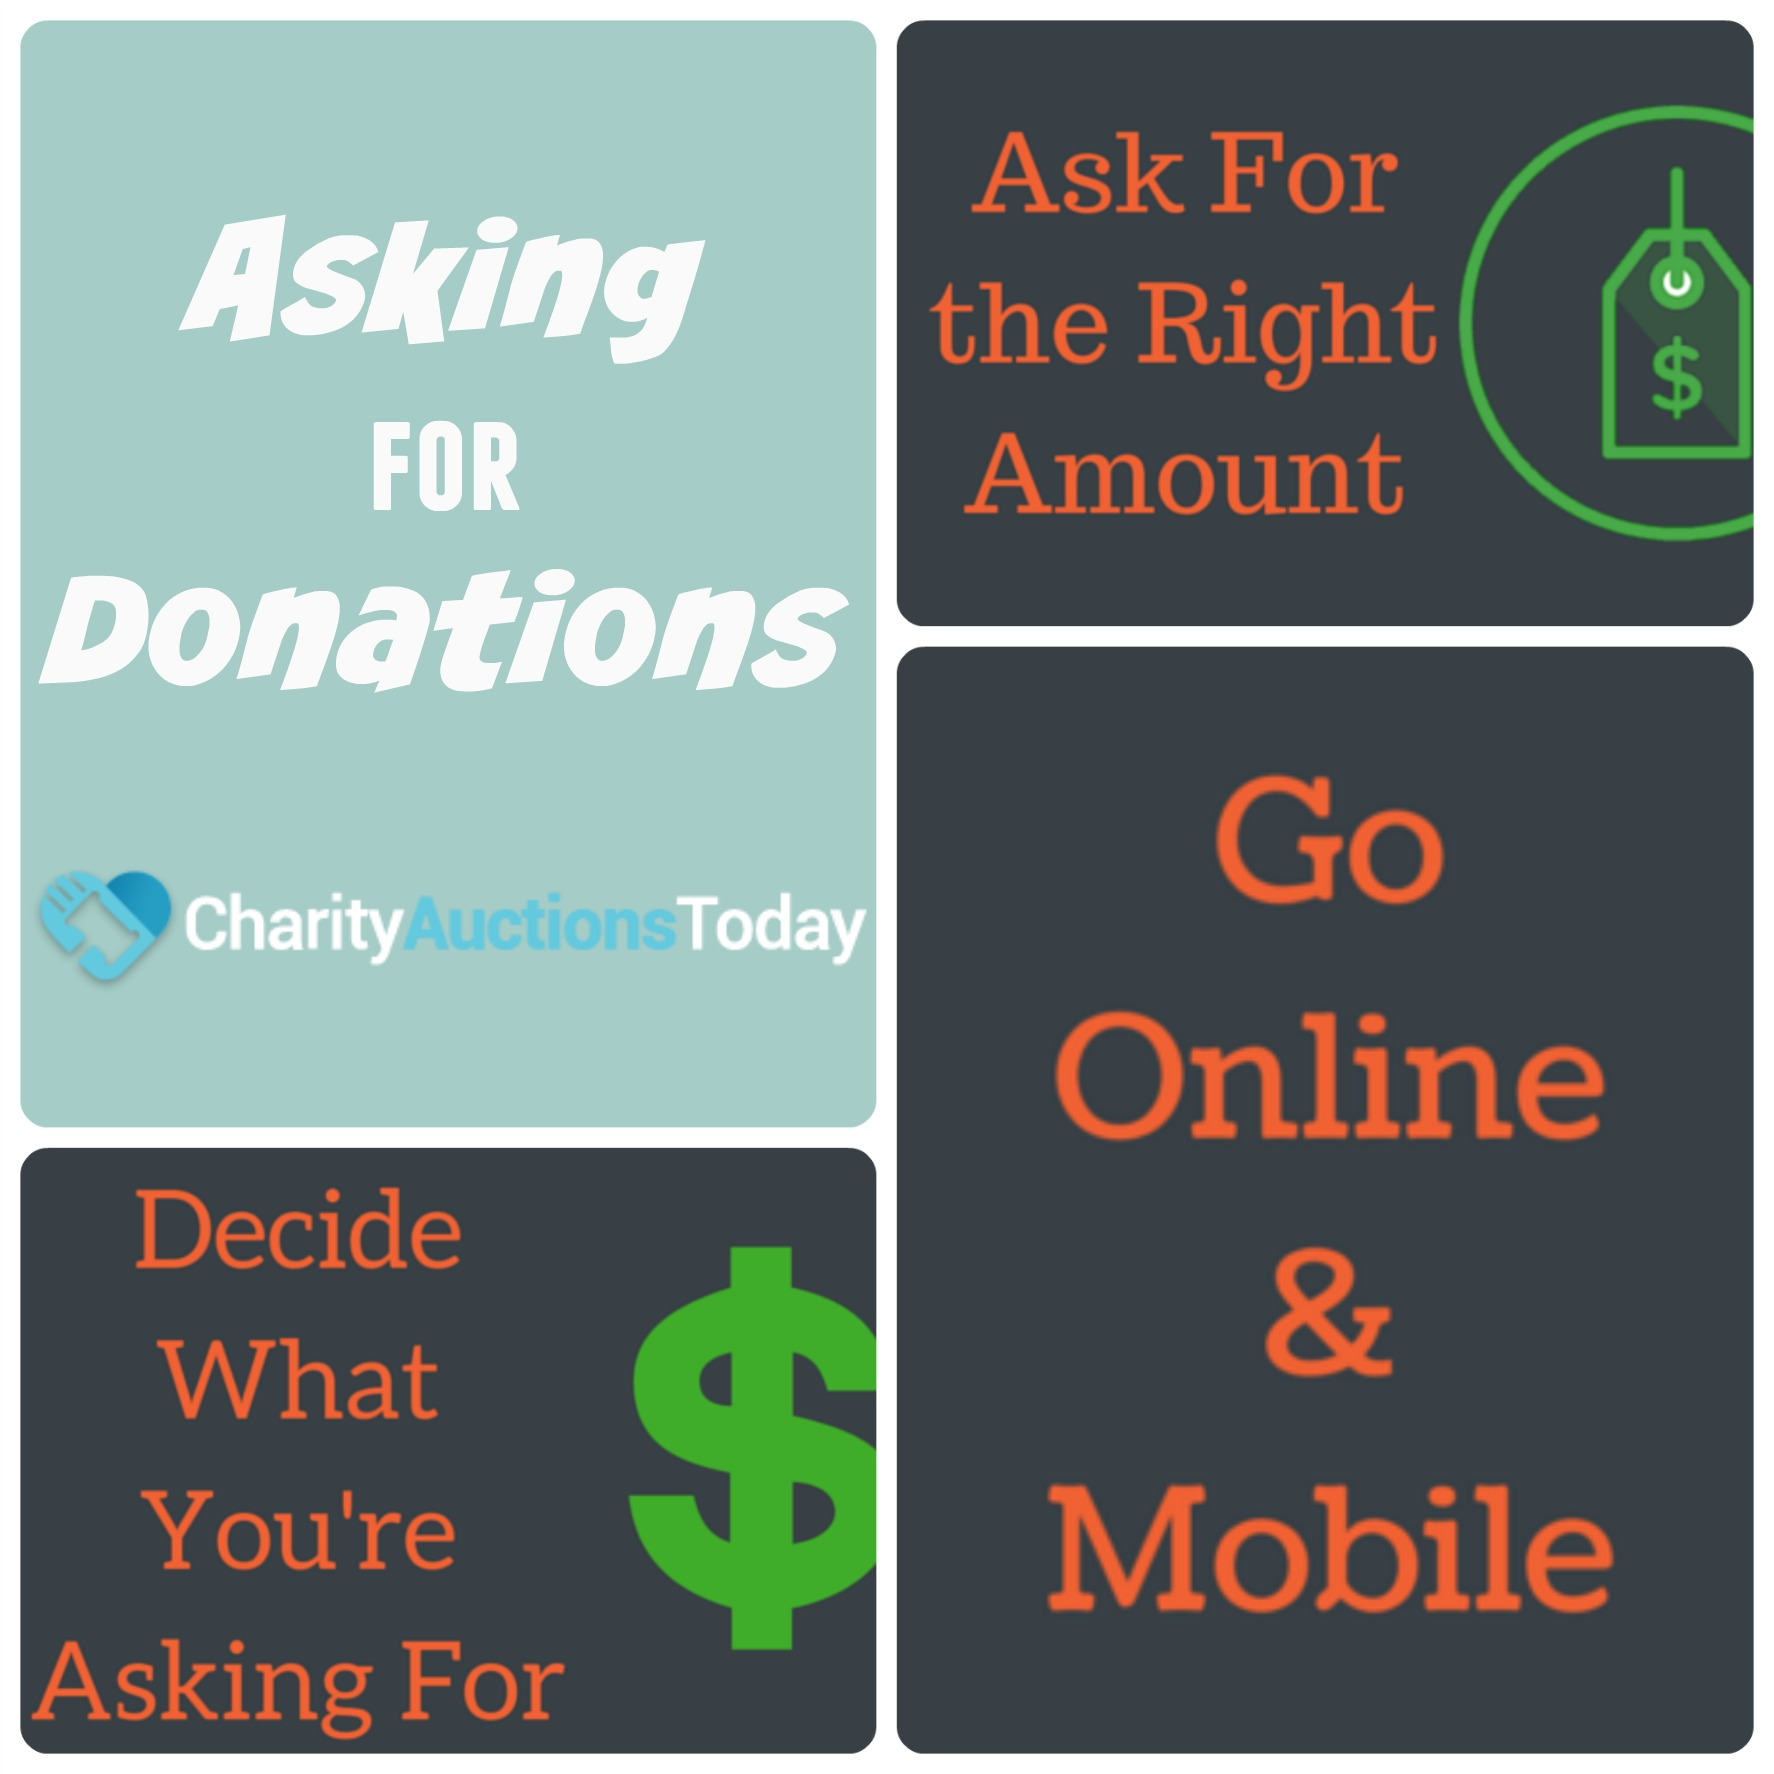 Asking For Donations  Best Practices  Charity Auctions Today